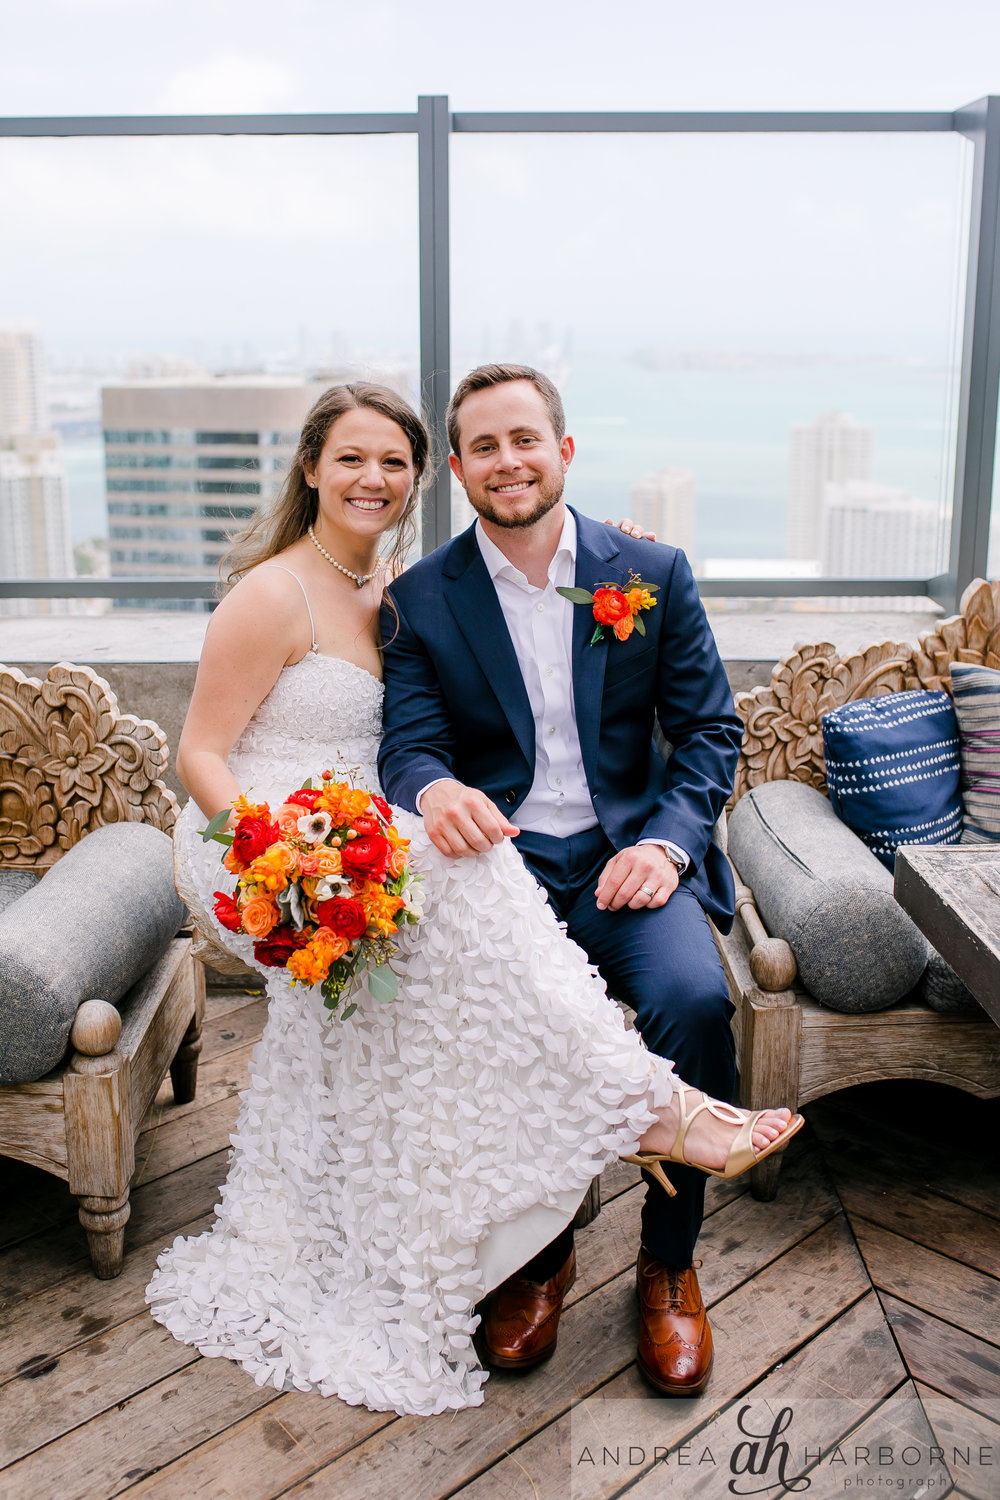 Dana & Alex - On the 40th floor of East, the lush rooftop bar of Sugar was the ceremony and brunch reception for this California-based couple.